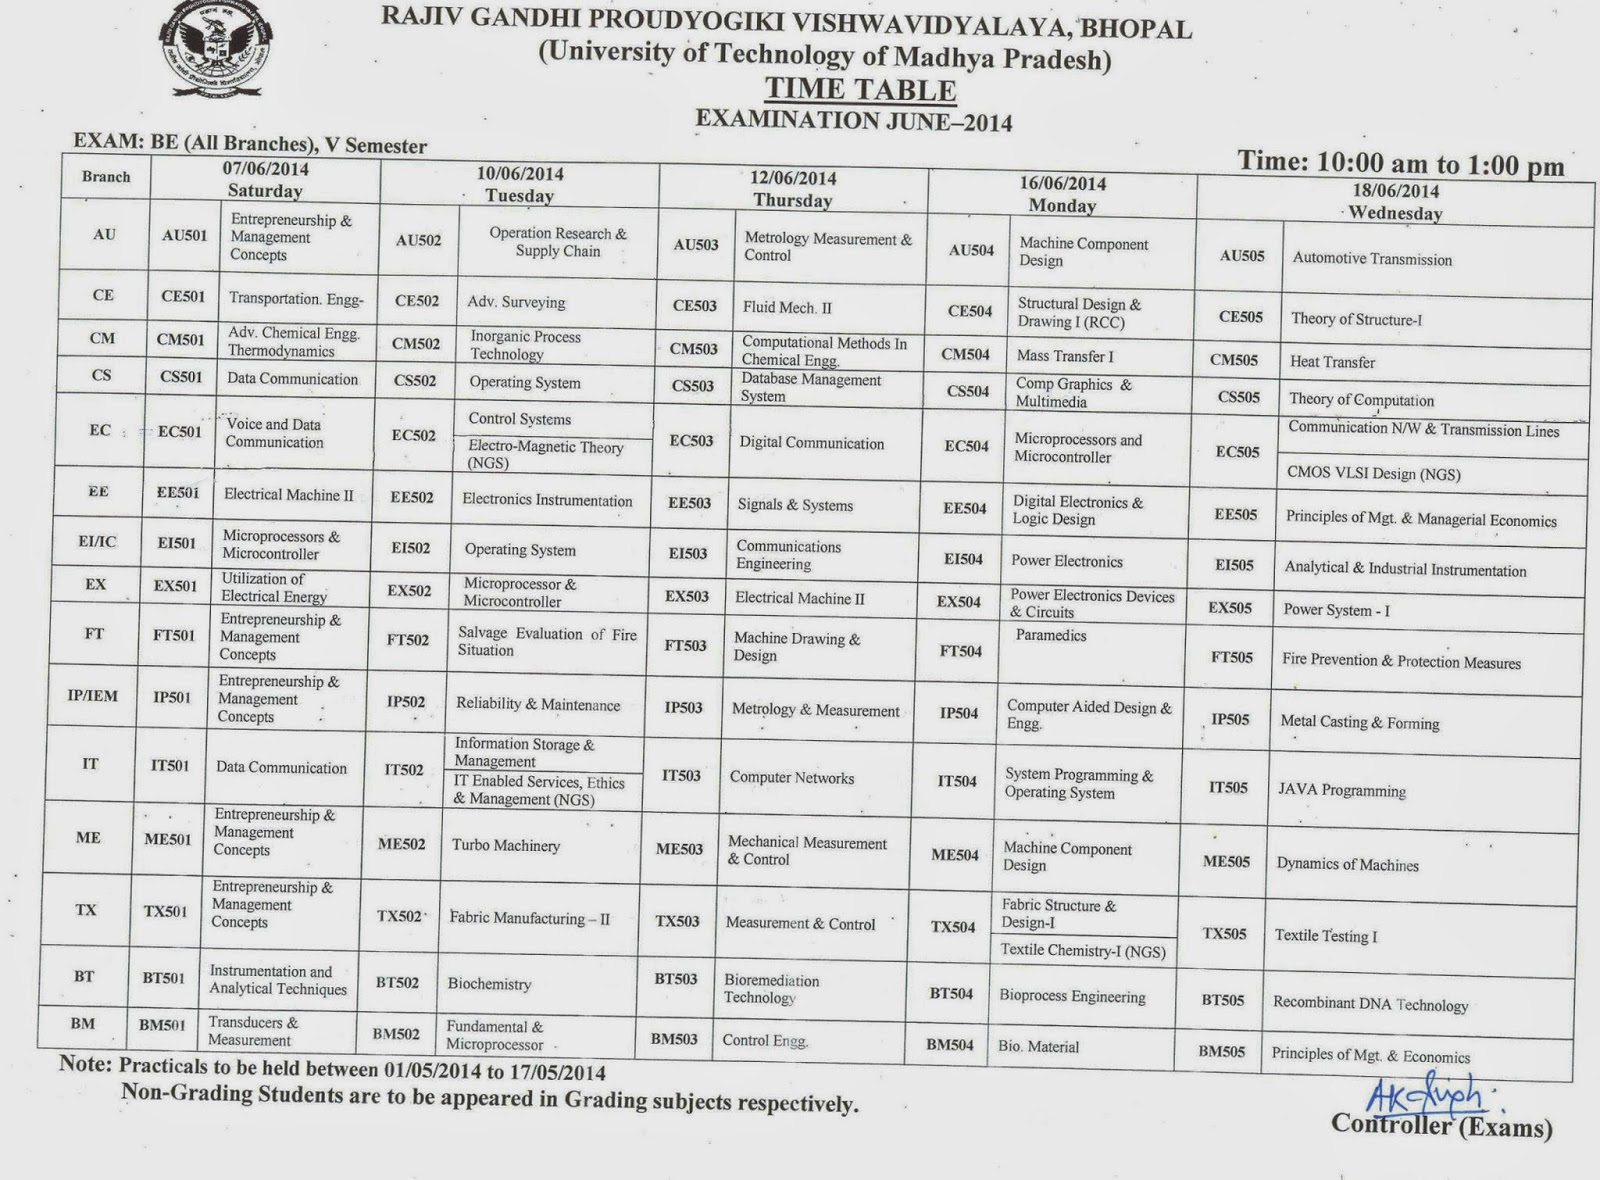 April 2014 rajiv gandhi proudyogiki vishwavidyalaya for Rgpv time table 6th sem 2015